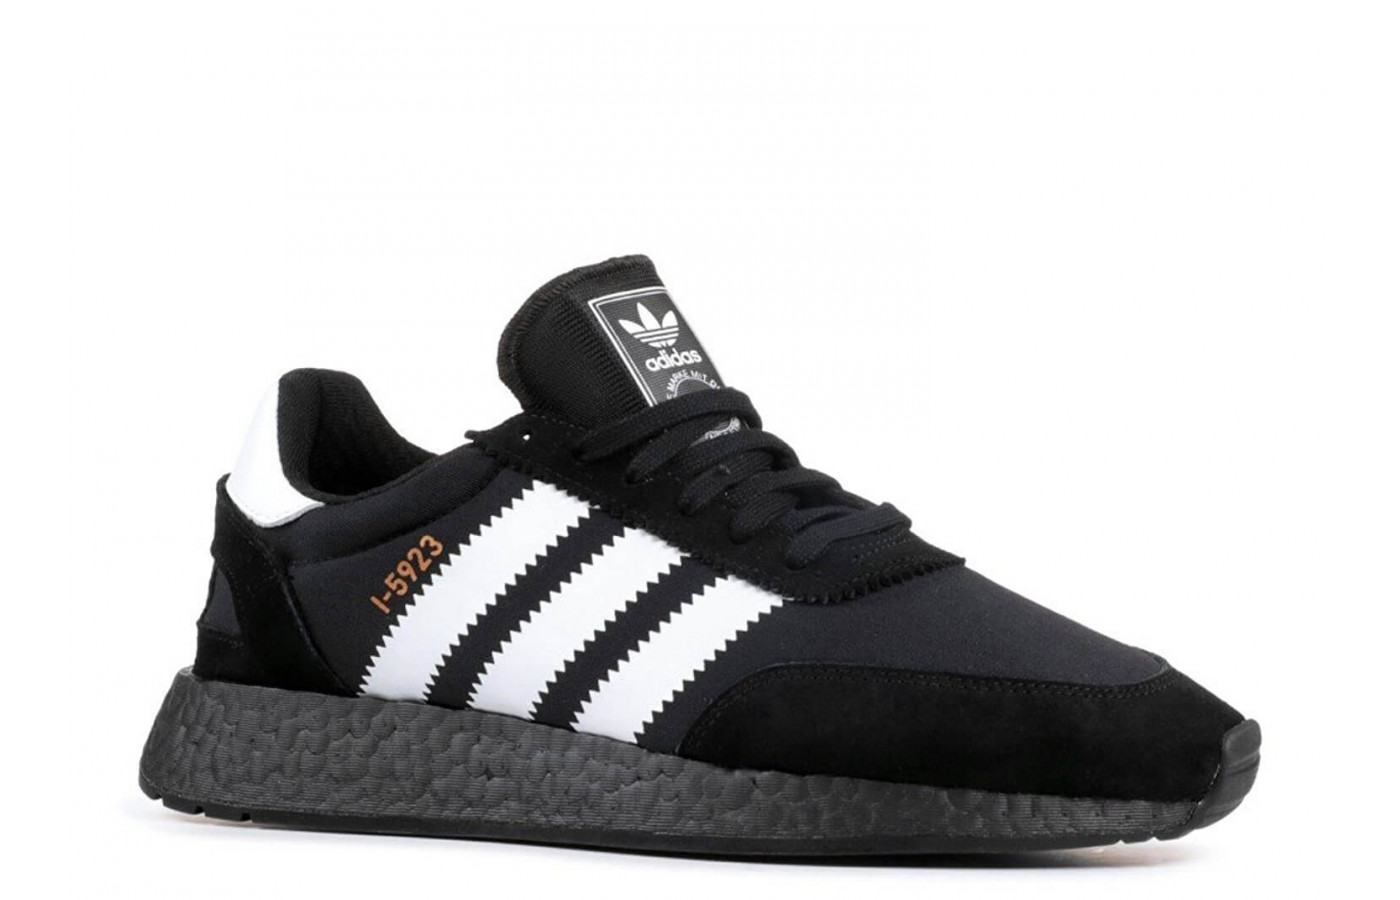 The Adidas 1-5923 has a classic look.